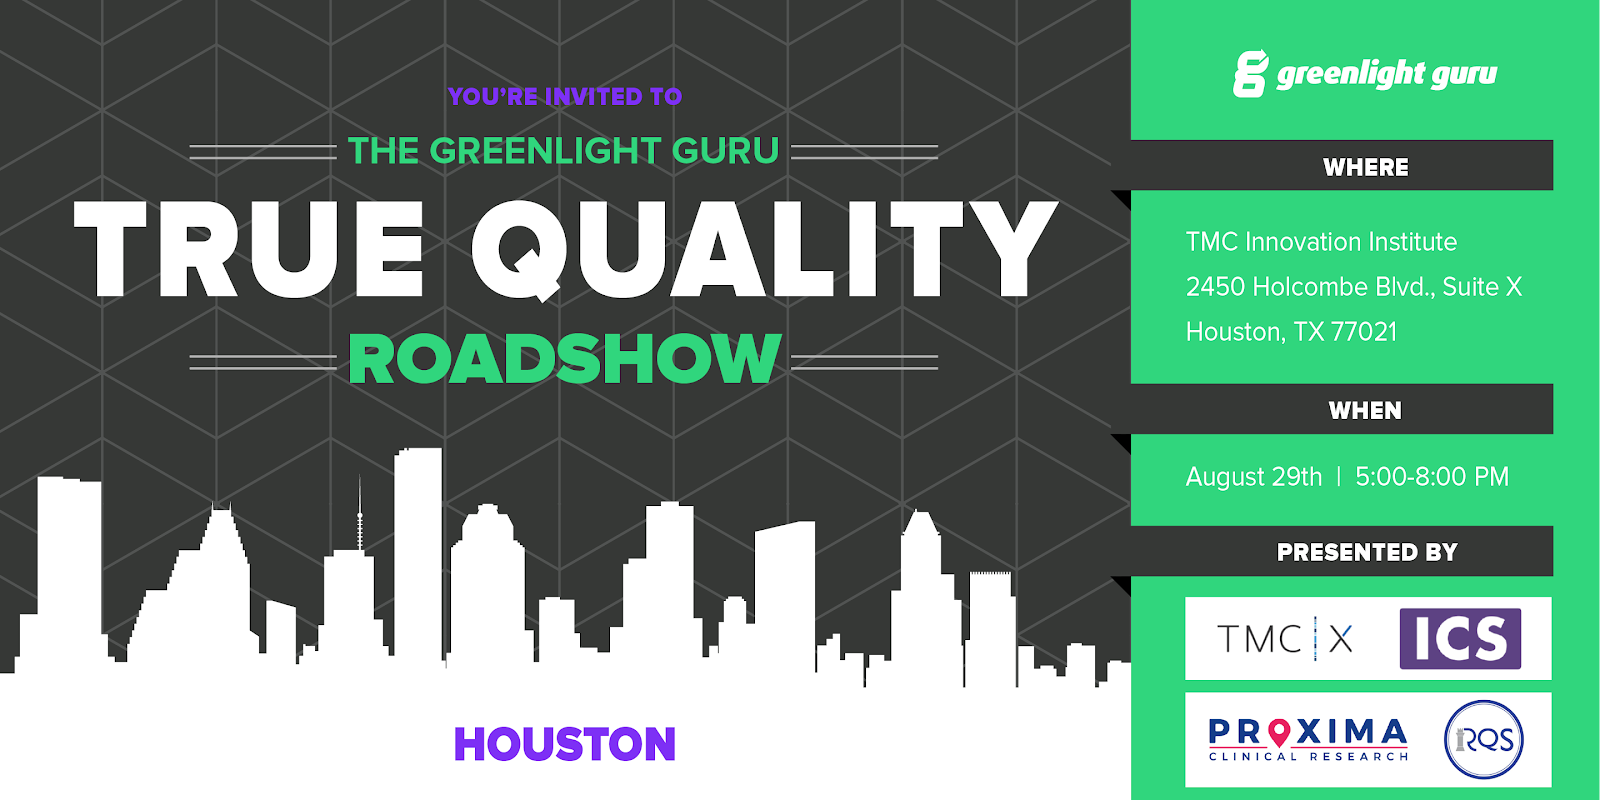 Greenlight Guru Houston